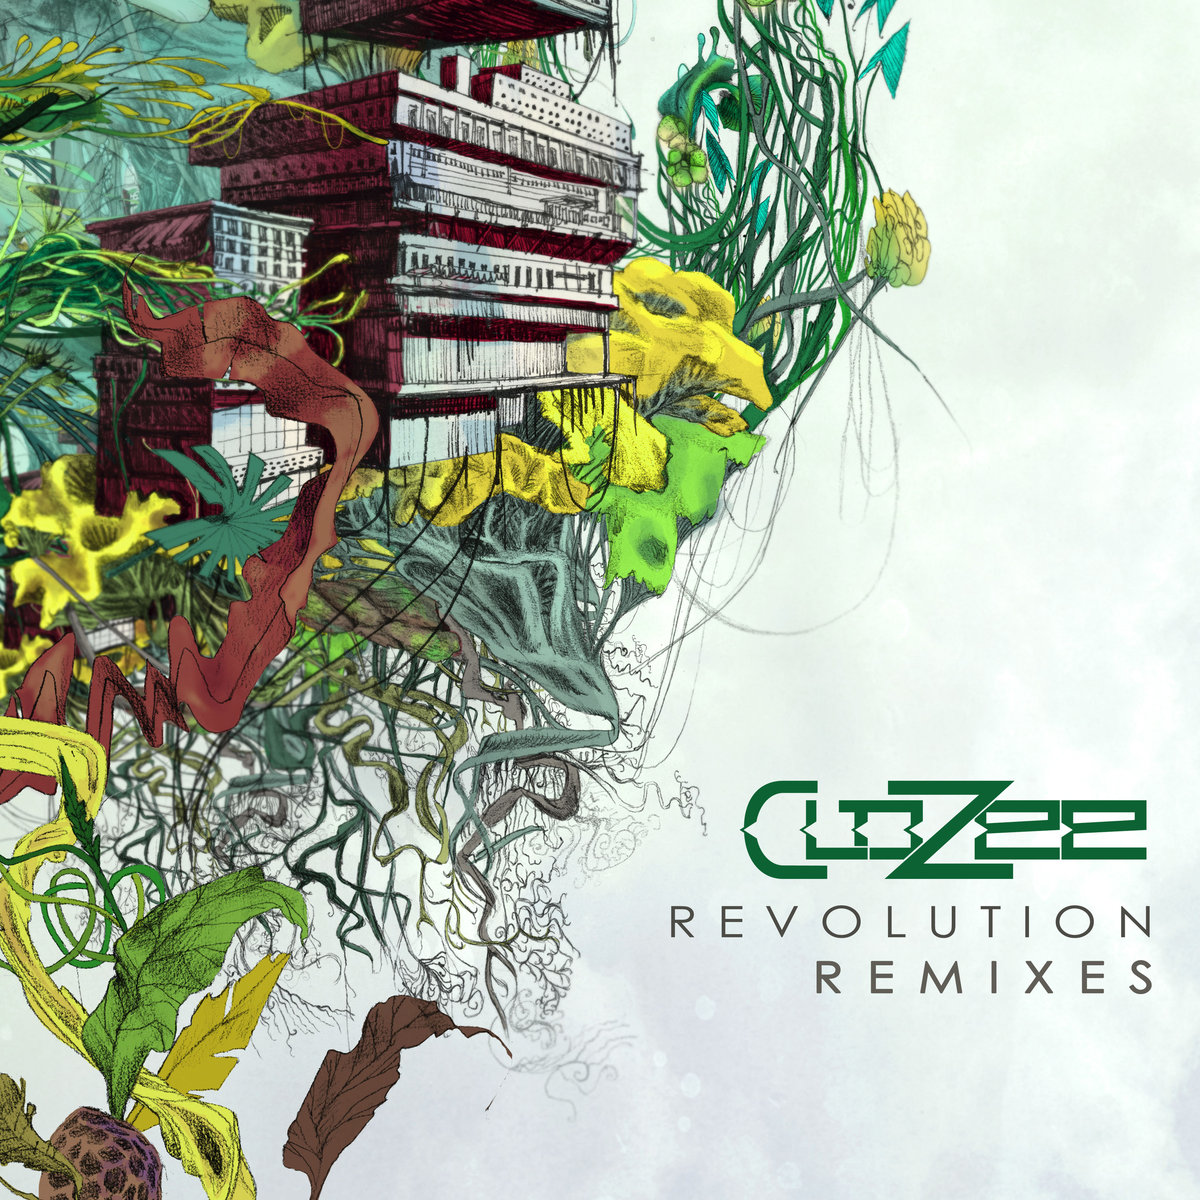 CloZee - Apsara Calling (David Starfire Remix) @ 'Revolution Remixes' album (chill, downtempo)